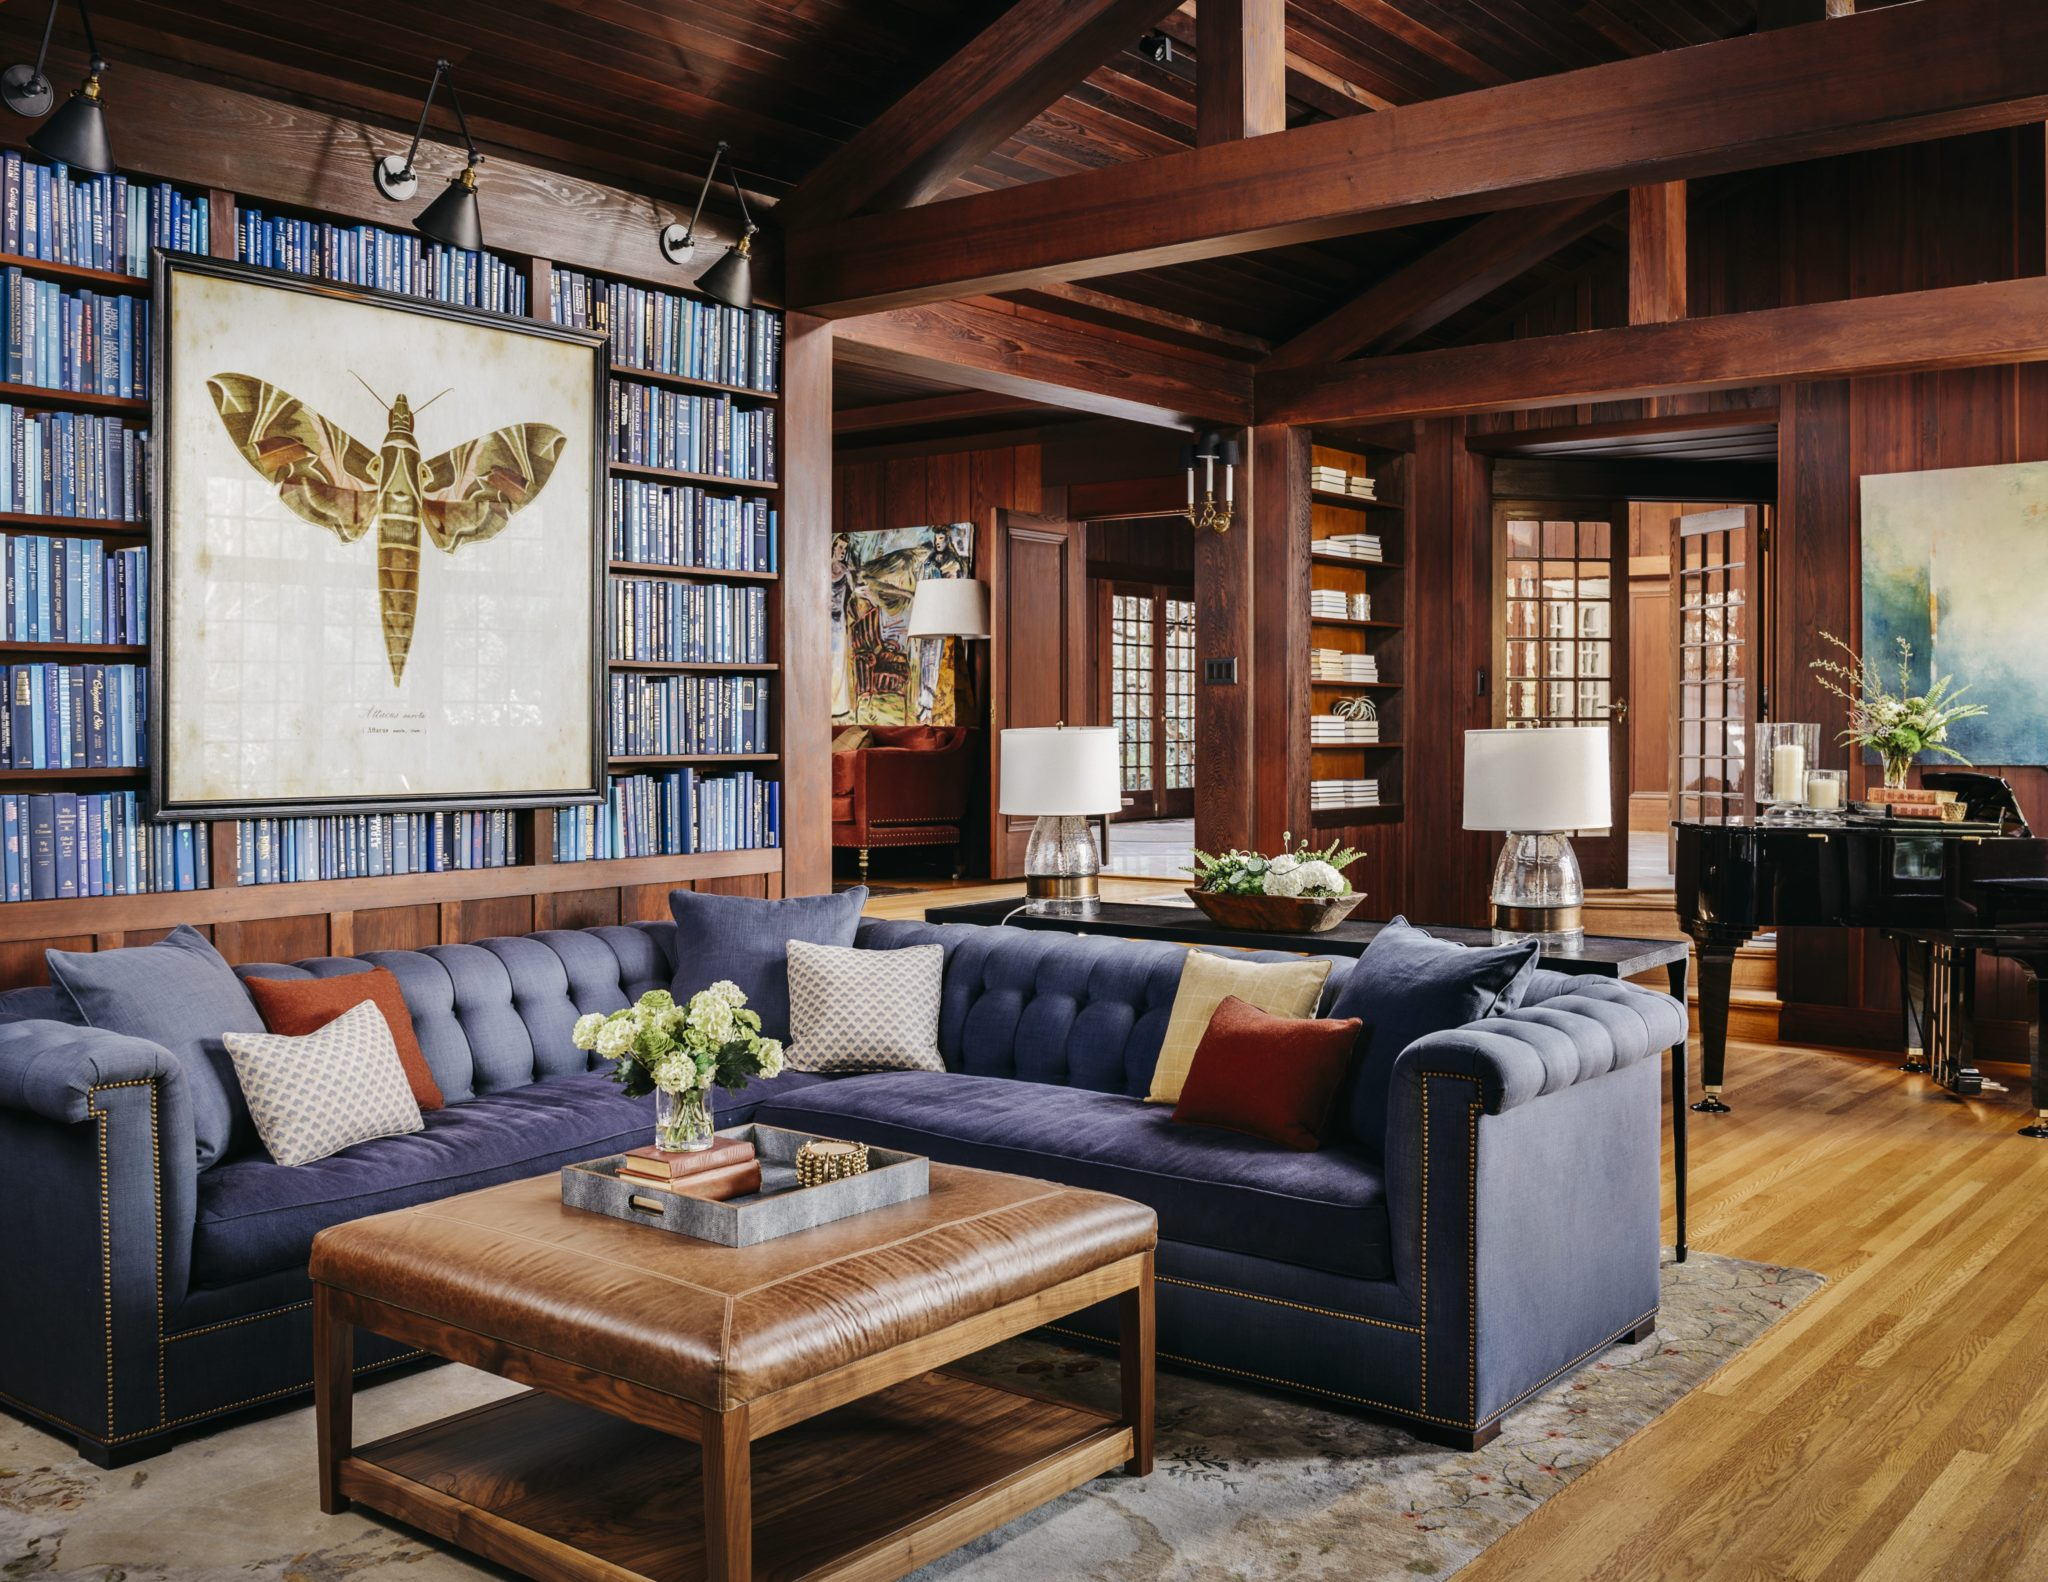 Like the library, the family room is influenced by a traditional European style.